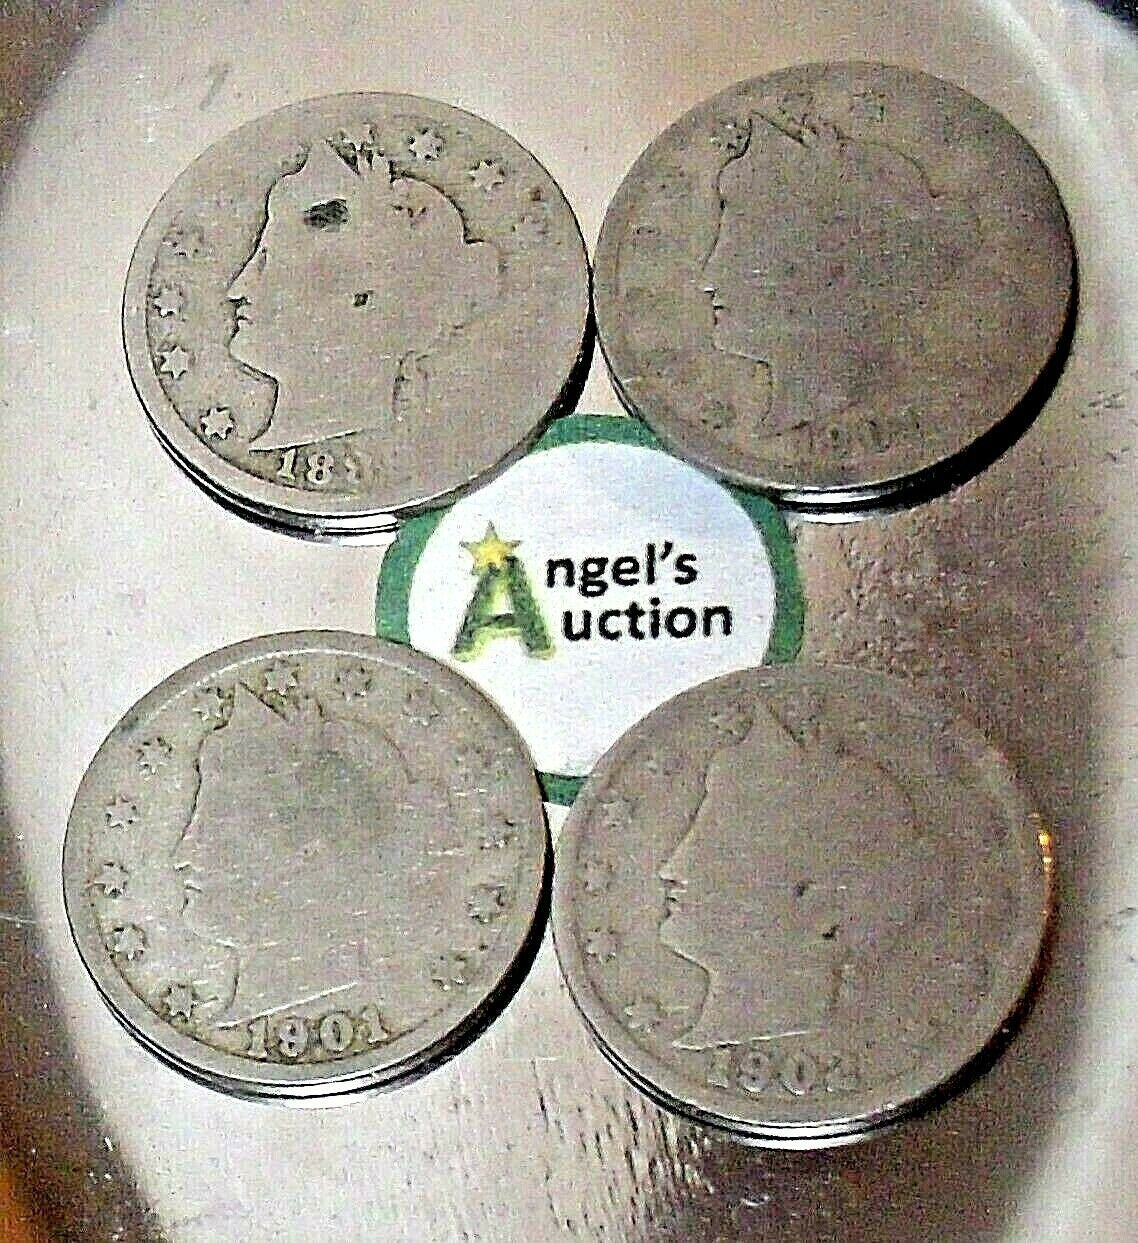 Liberty Head Nickel Five-Cent V Pieces 1889, 1900, 1901 and 1902 AA20-CNN2151 An